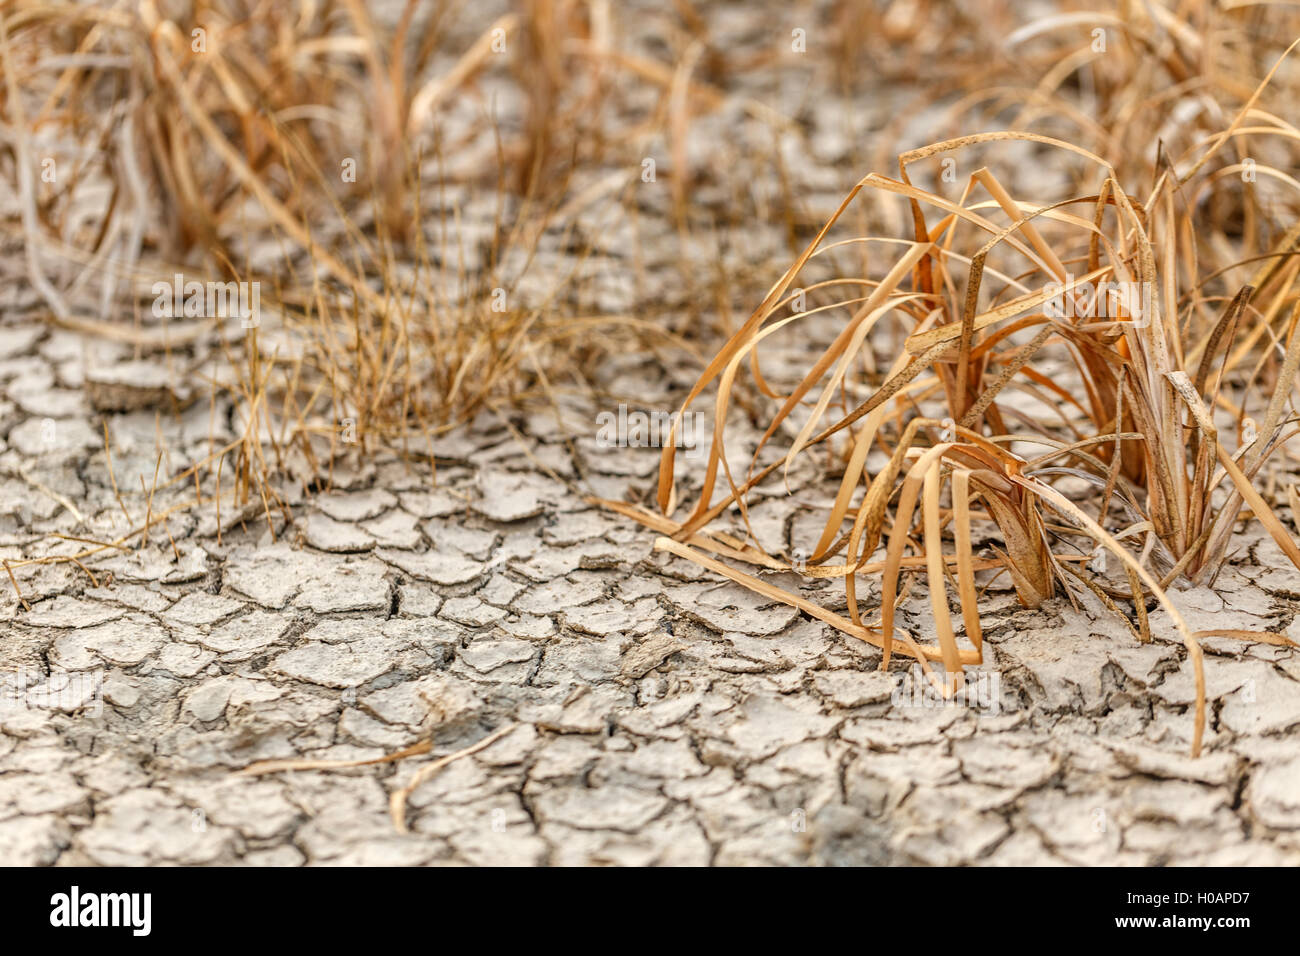 Cracked earth and dead plants - Stock Image